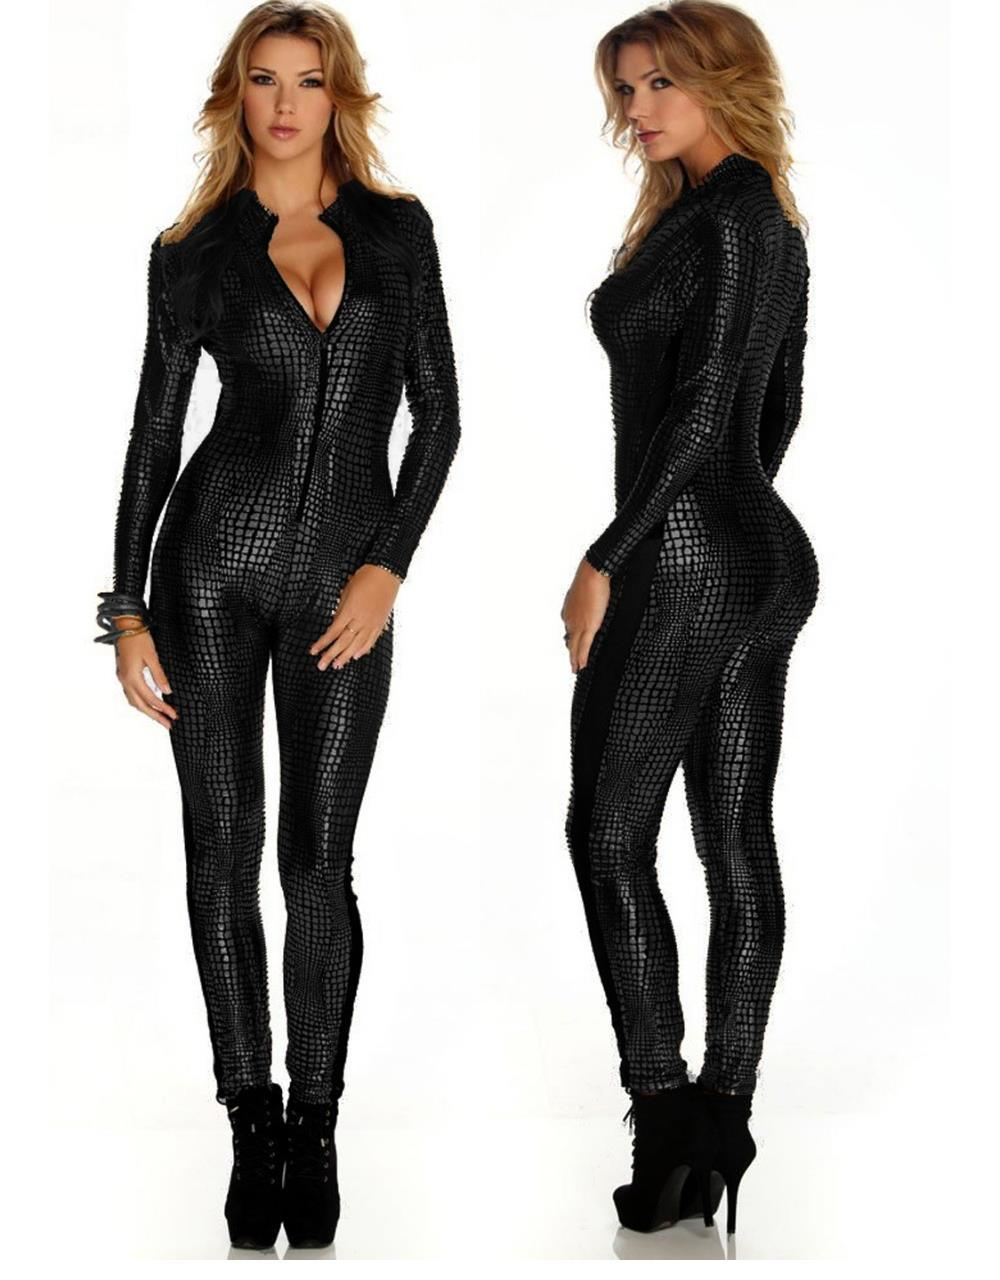 fbe77bcef6 2019 Wholesale Sexy Jumpsuit For Women Vinyl Leather Jumpsuit 2015 Hot Sale  New Black Sliver Gold Sexy Leather Bodysuit W207980 From Primali